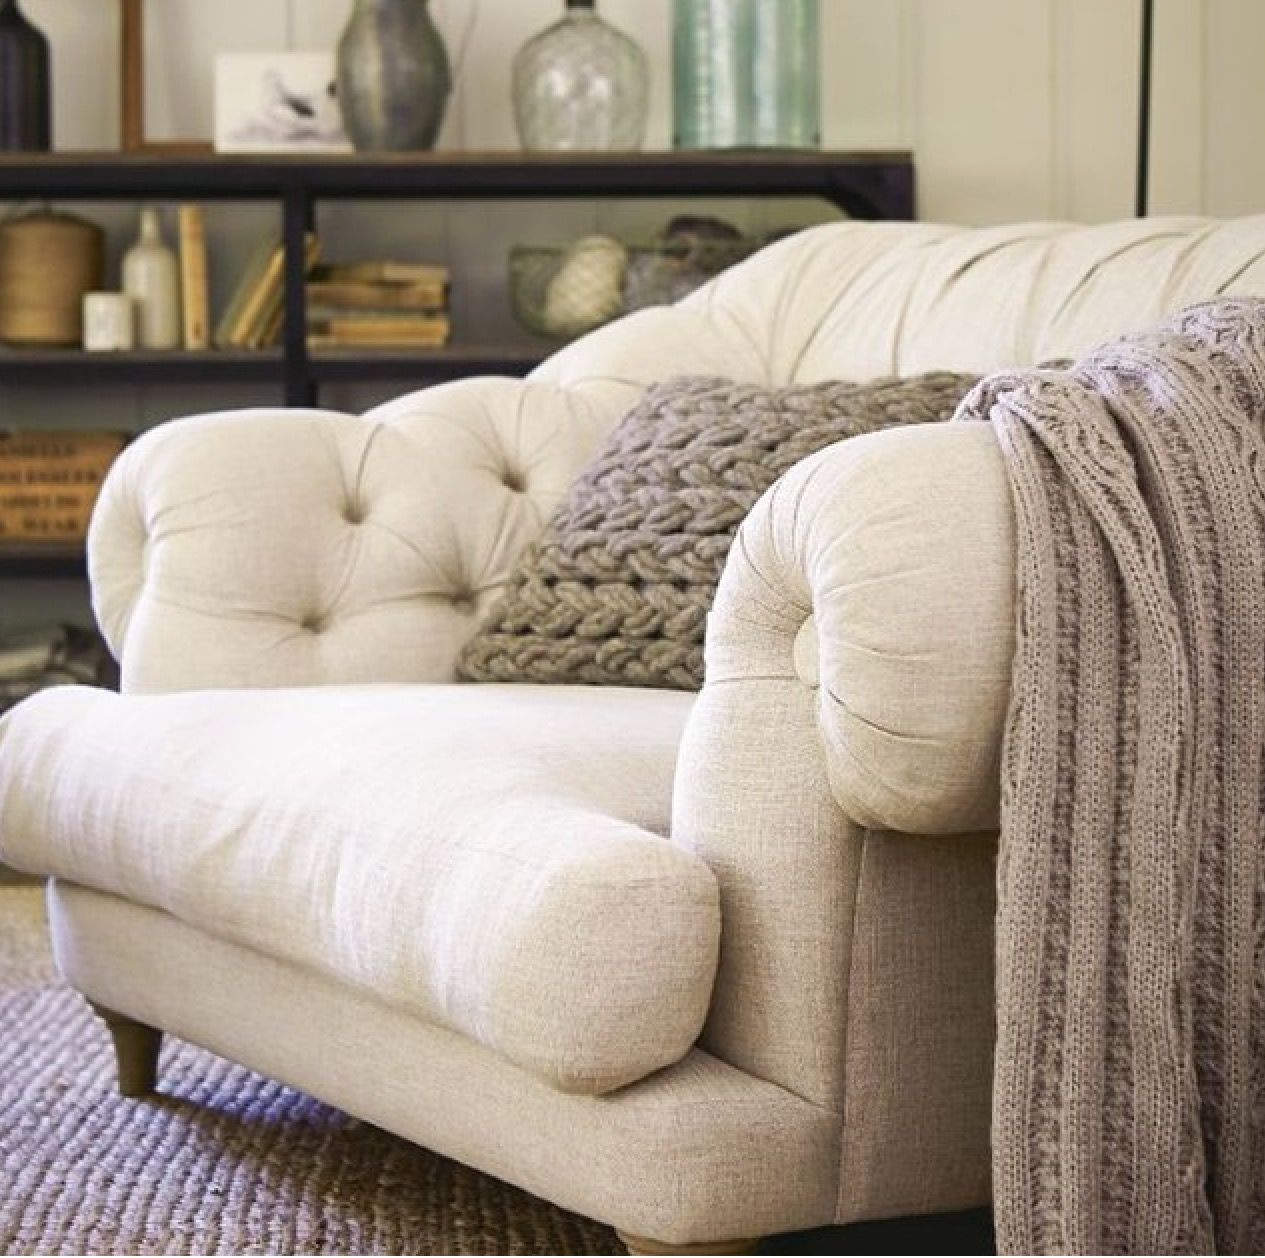 Tufted chair Tufted chair For the